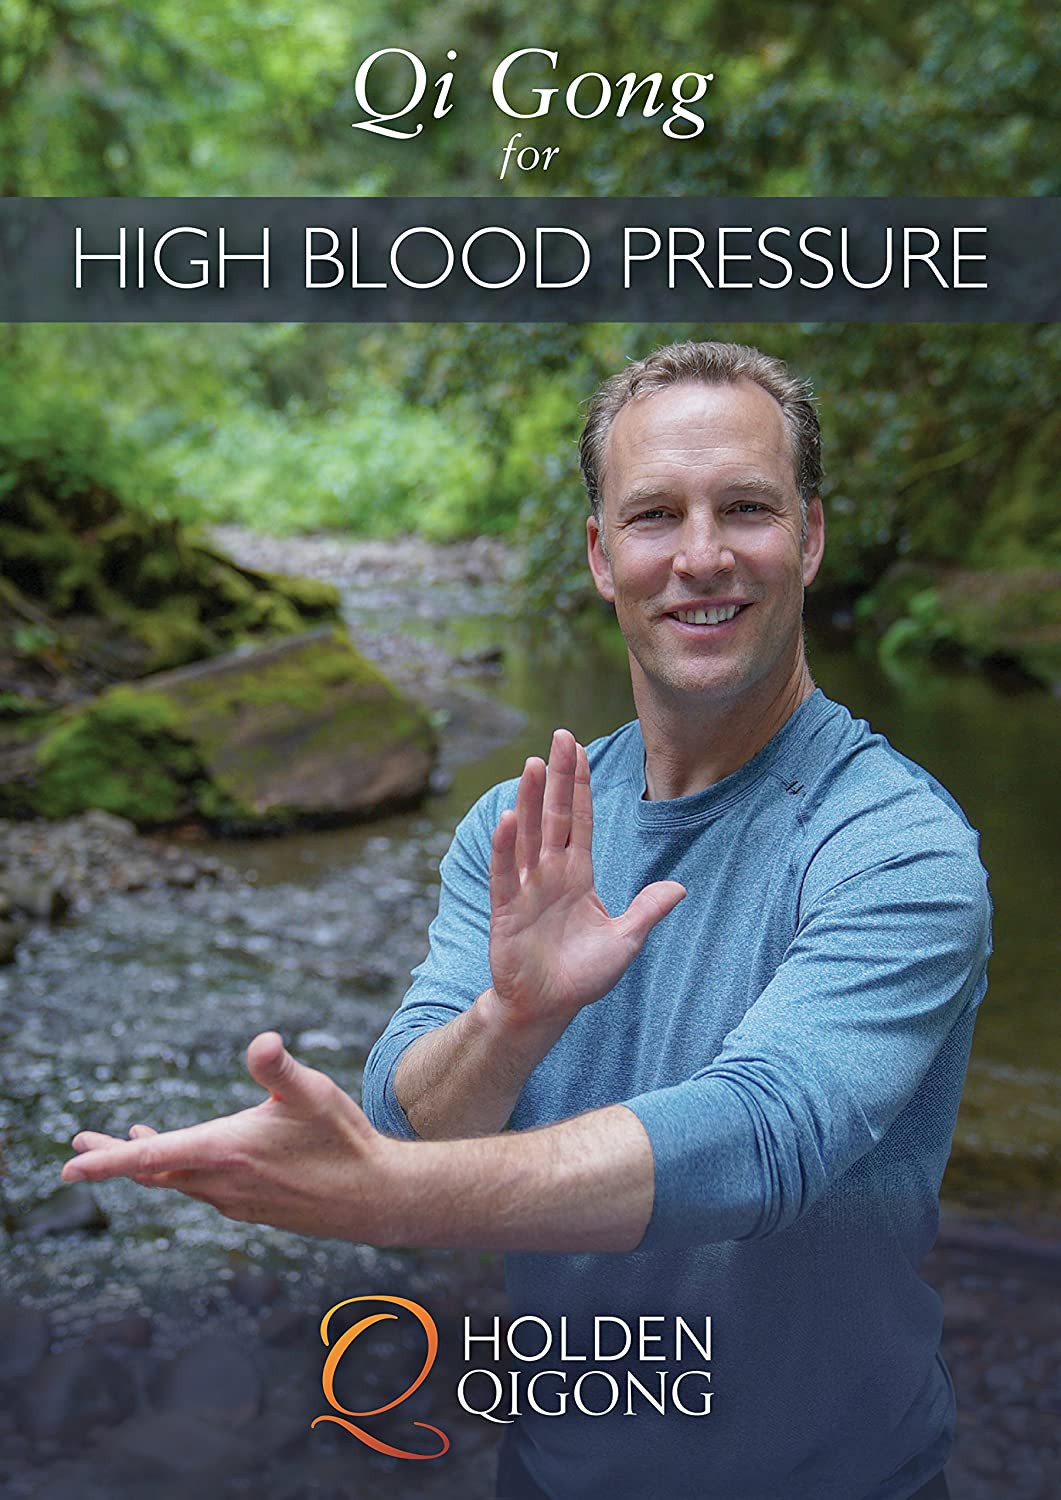 Qi Gong for High Blood Pressure by Lee Holden (YMAA) 2018 Qigong DVD series **BESTSELLER**